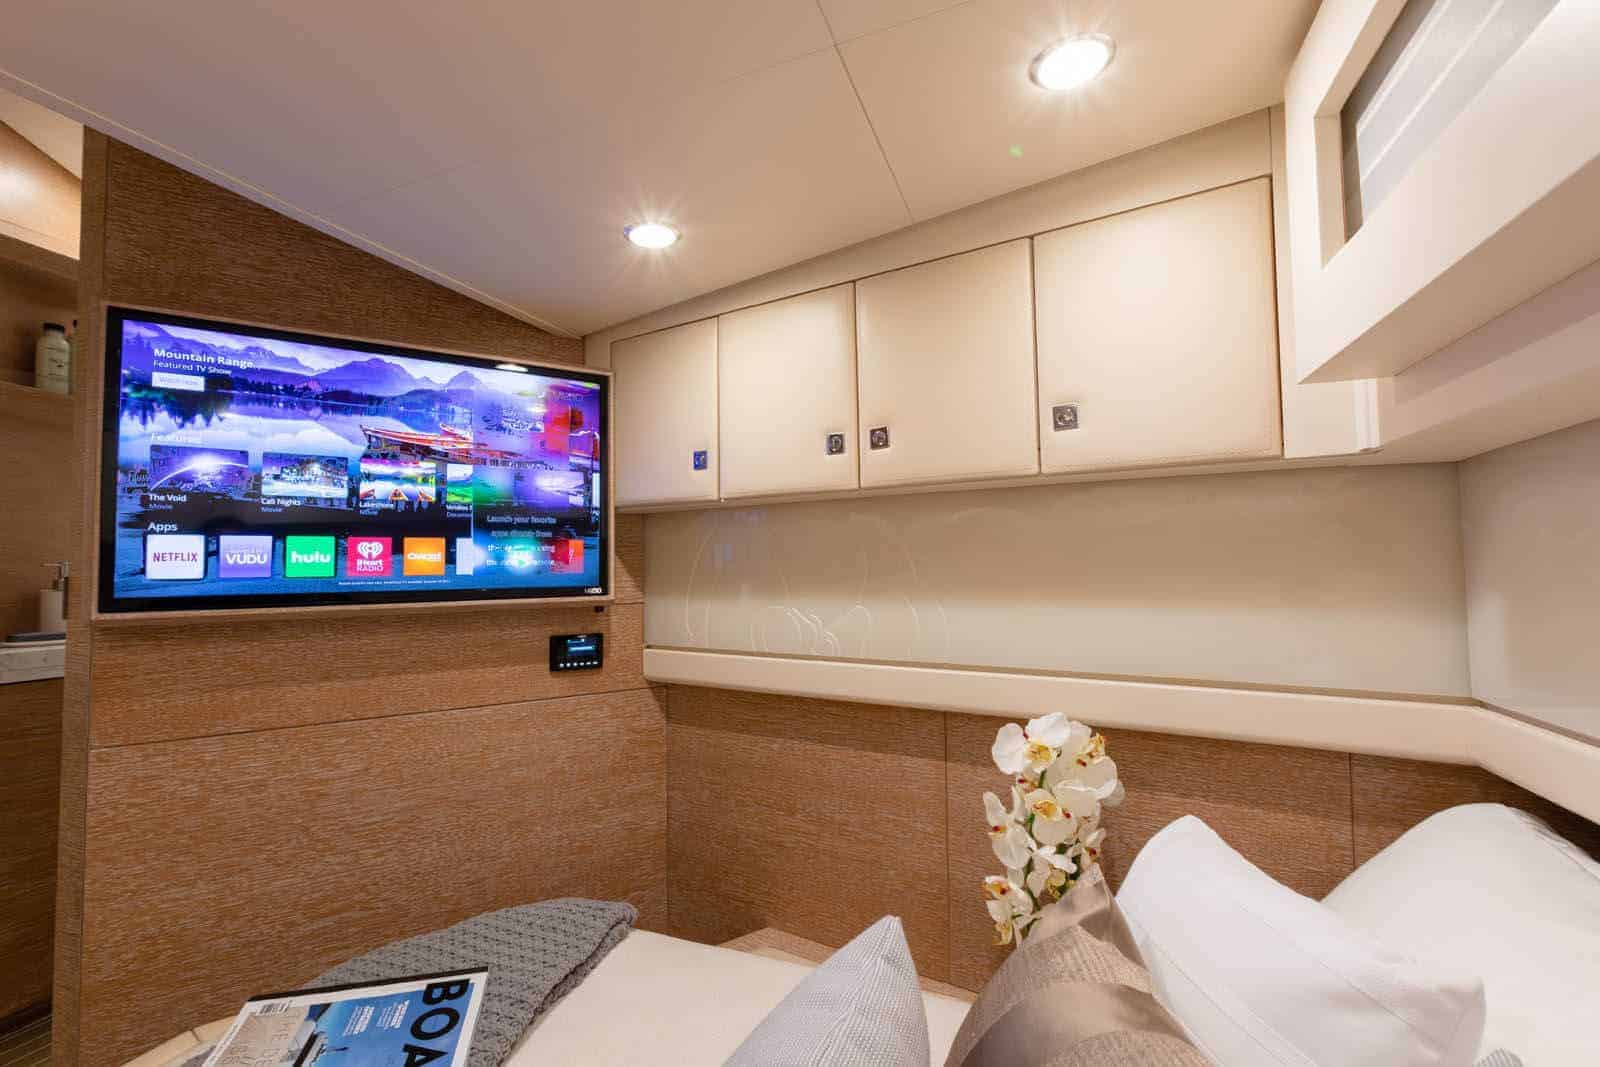 530LXF TV and cabinets in master stateroom